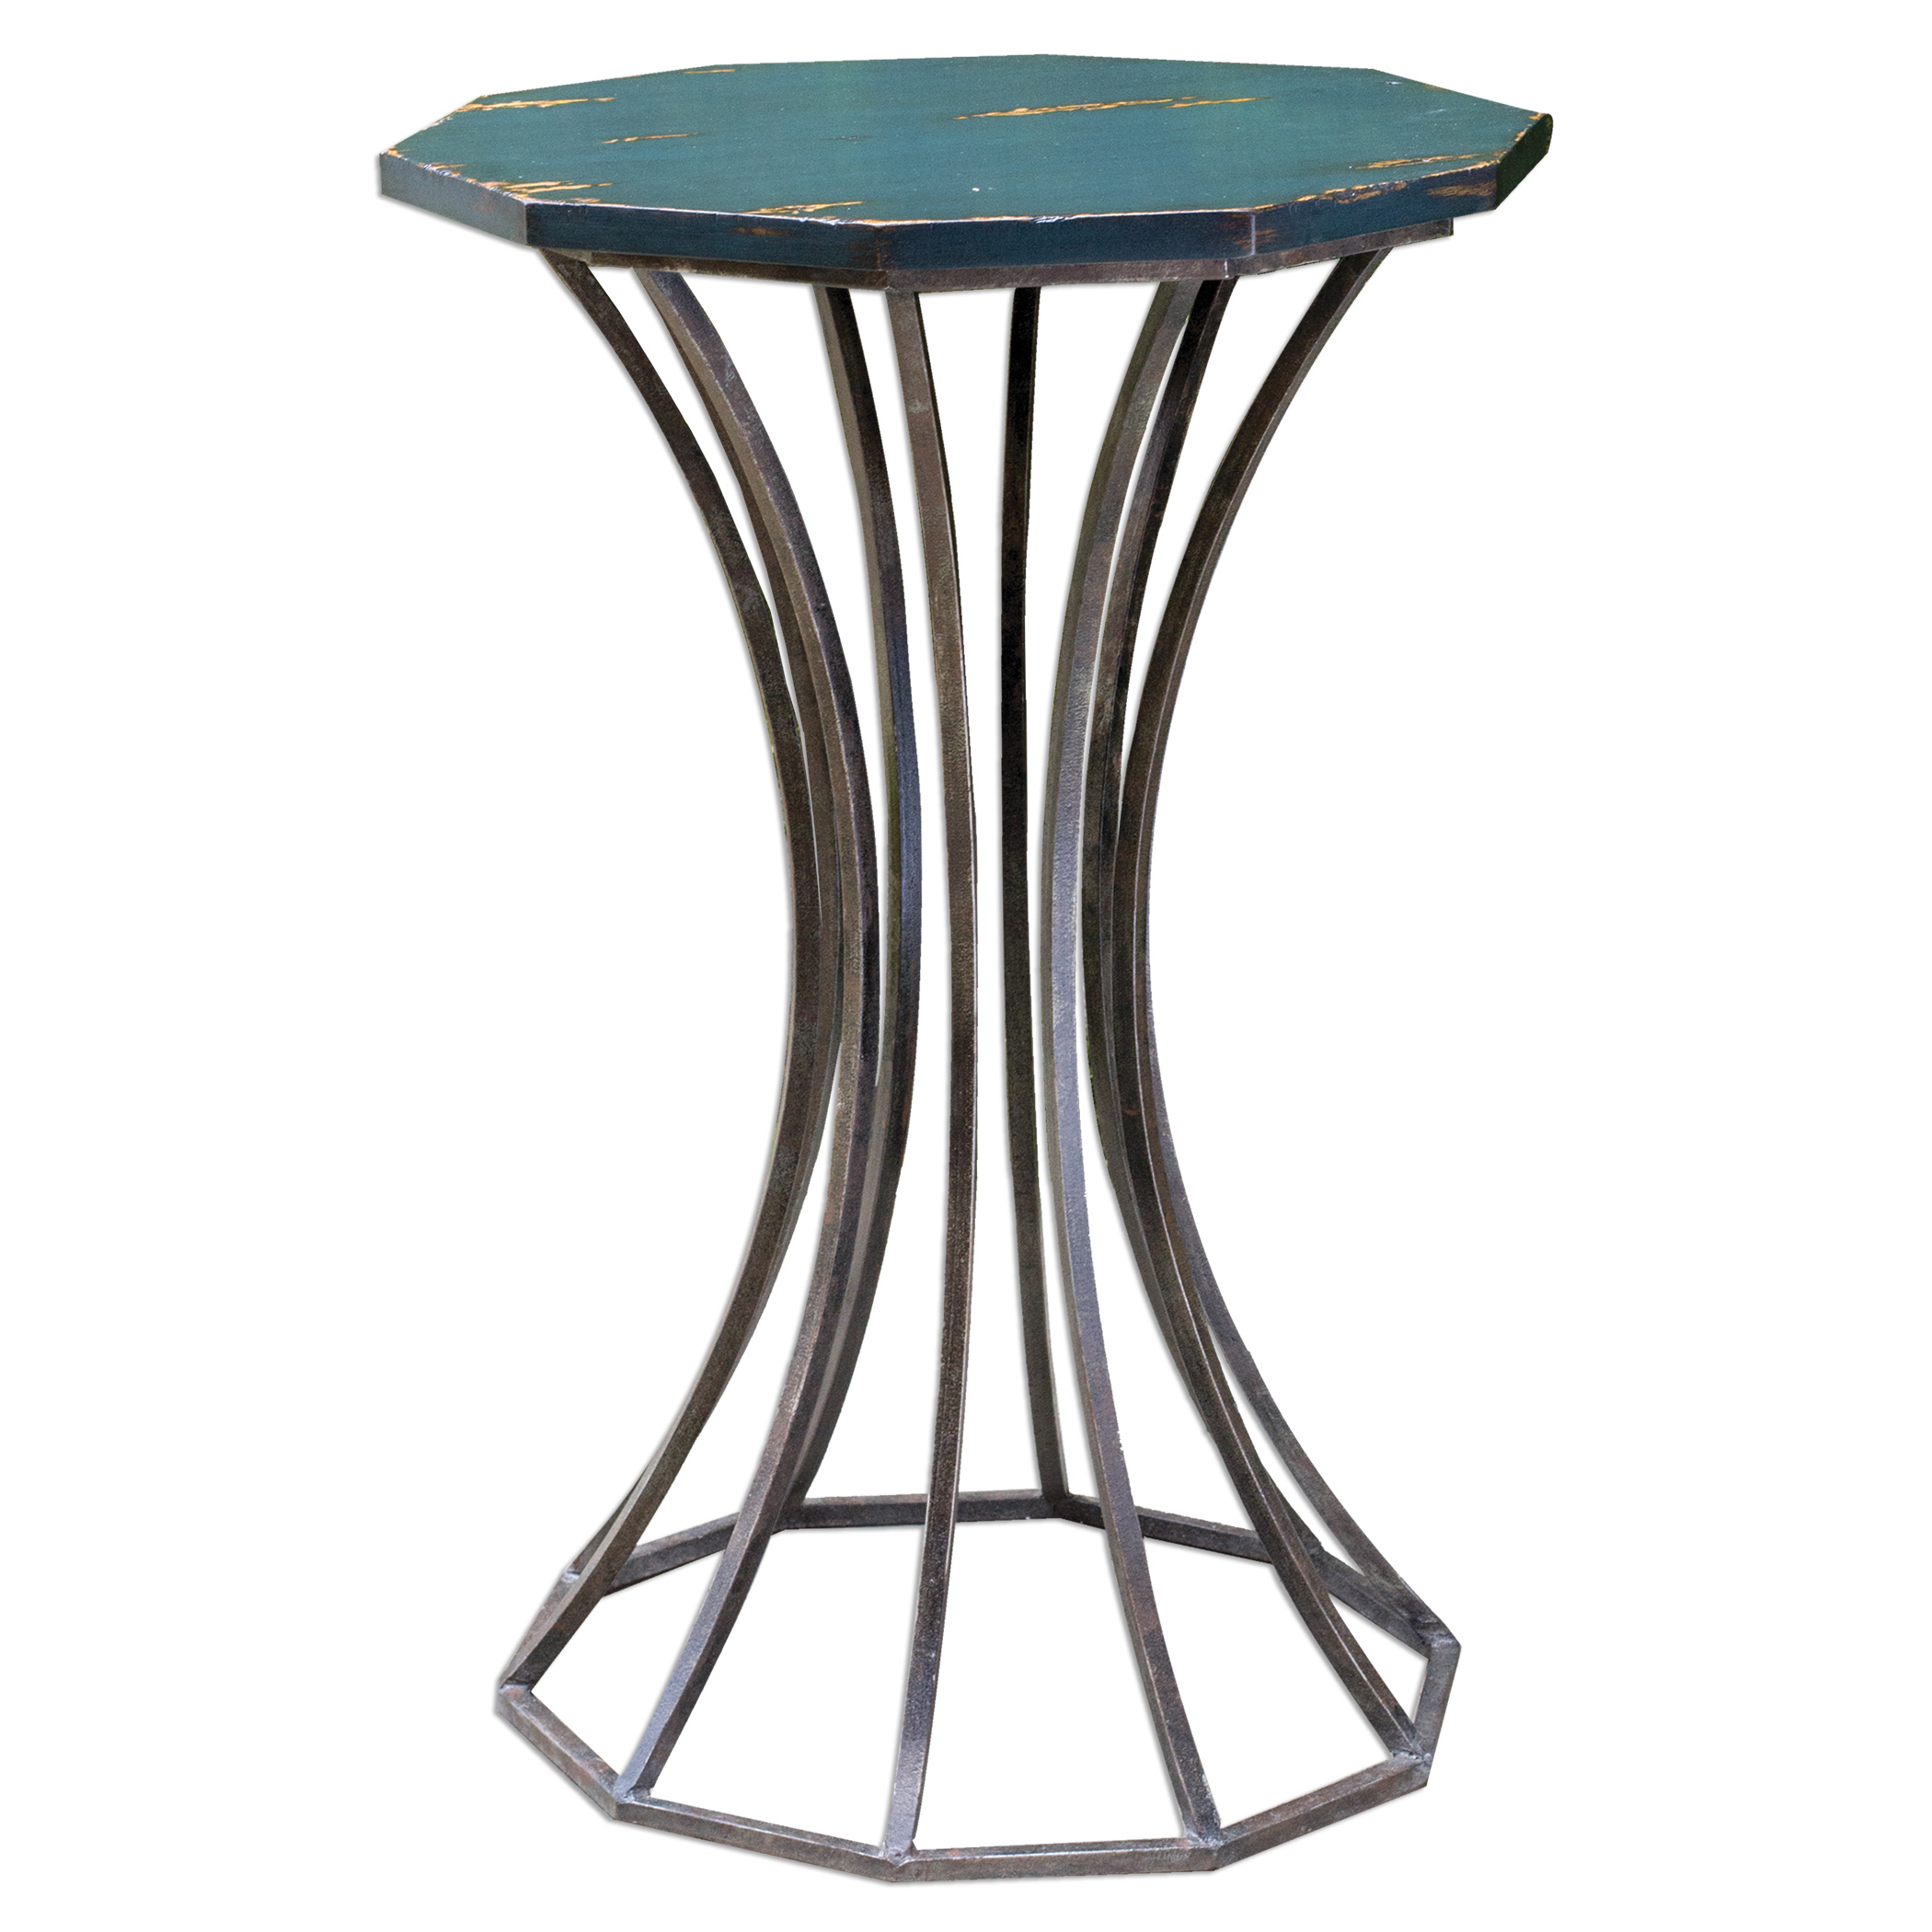 Uttermost Accent Furniture Vika Navy Blue Accent Table - Item Number: 25696